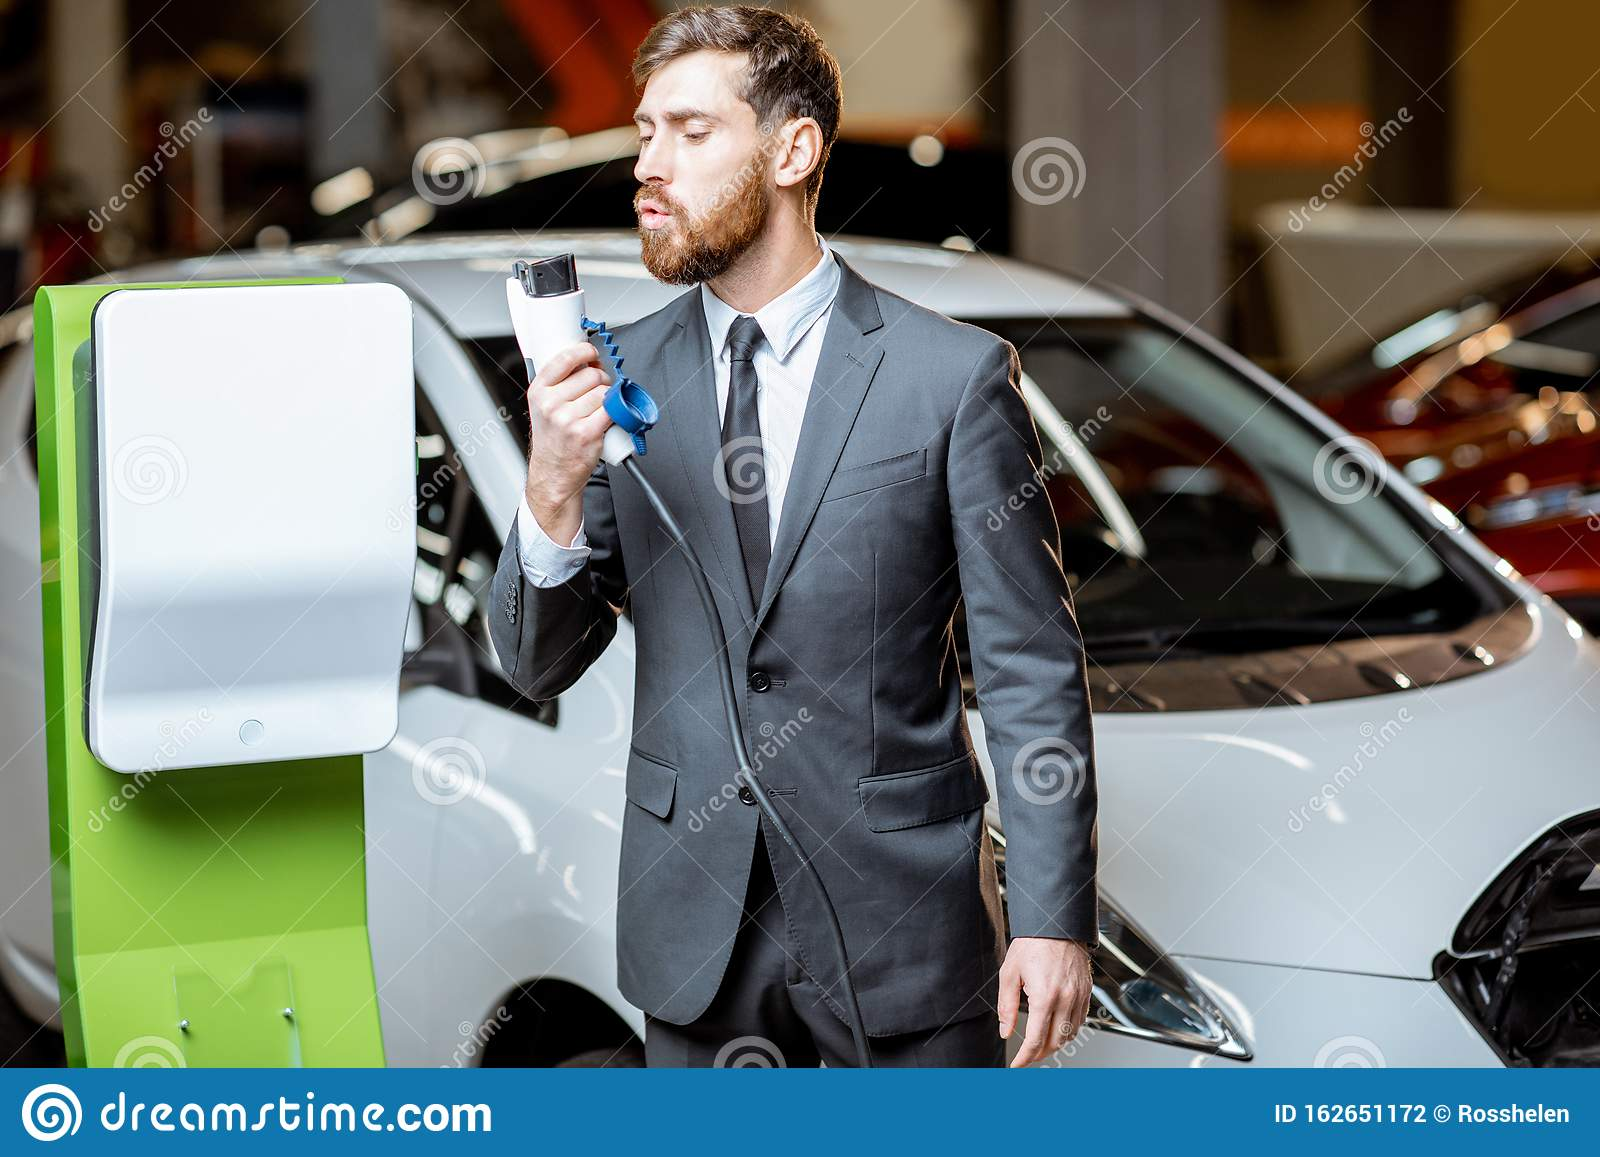 Salesman With Electric Car Charging Station In The Dealership Stock Photo Image Of Power Agent 162651172